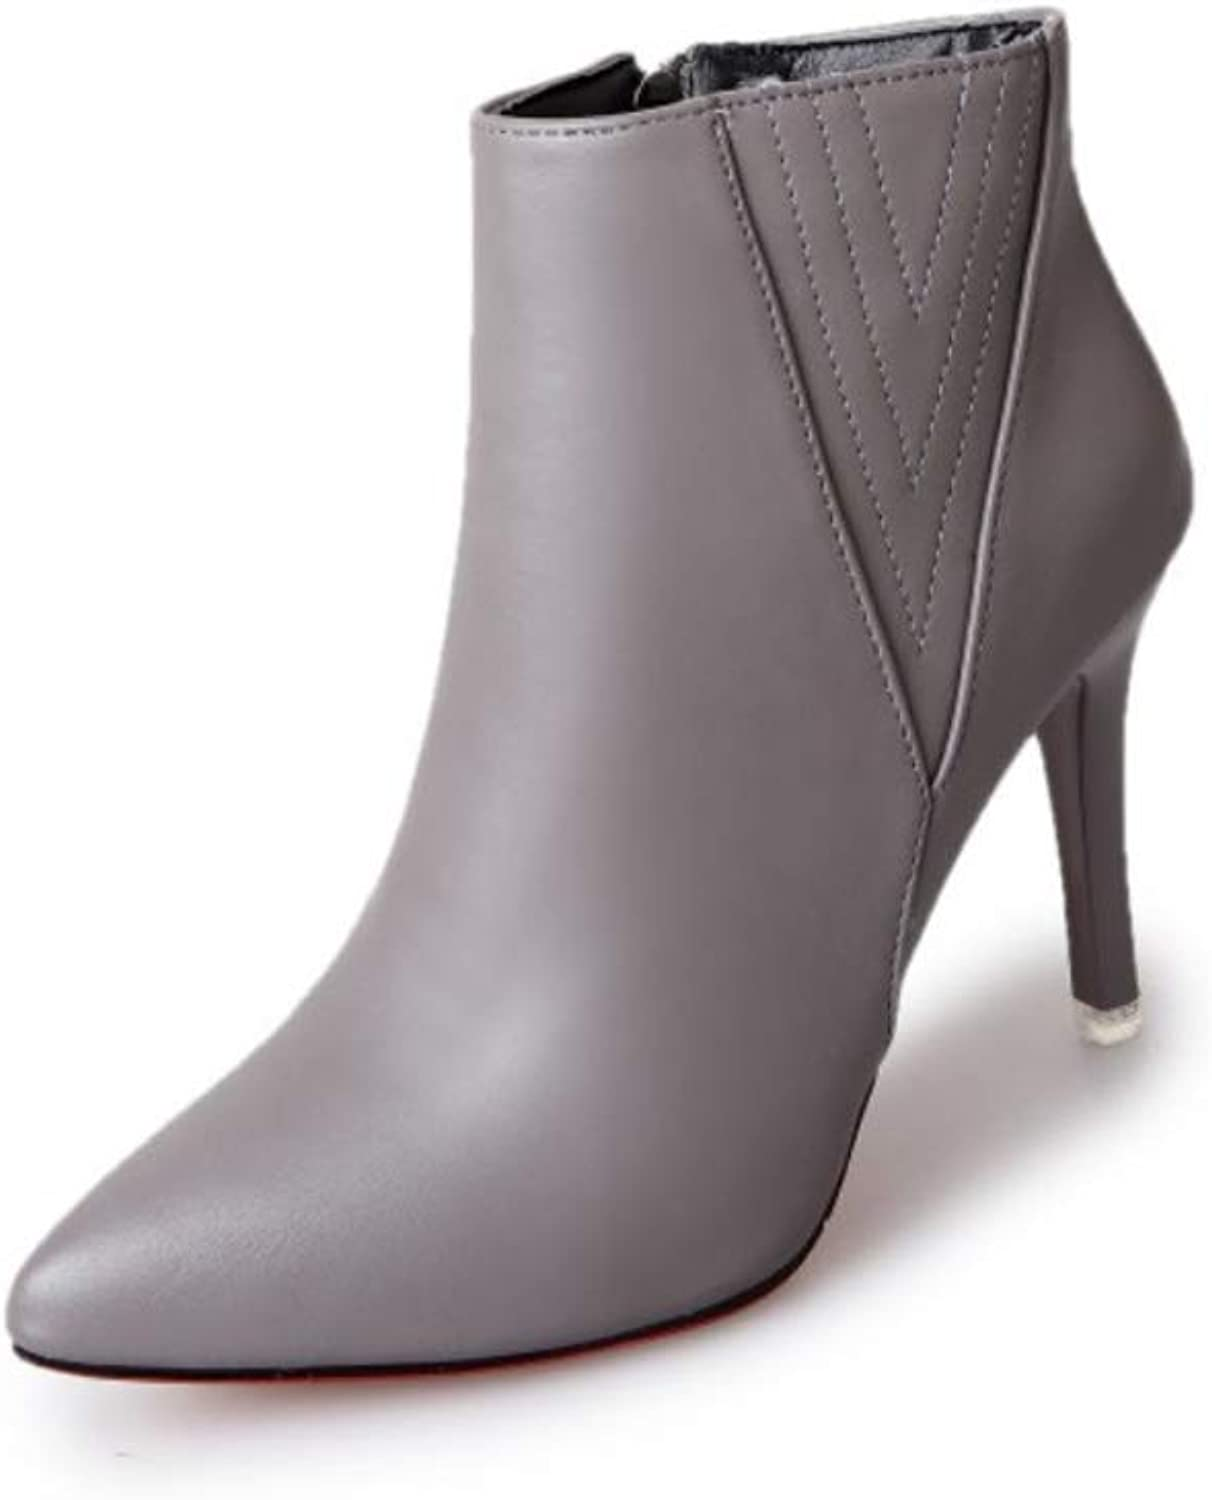 Women's Ankle Boots 2018 Fall Fashion Boots Stiletto Heel Pointed Toe Booties